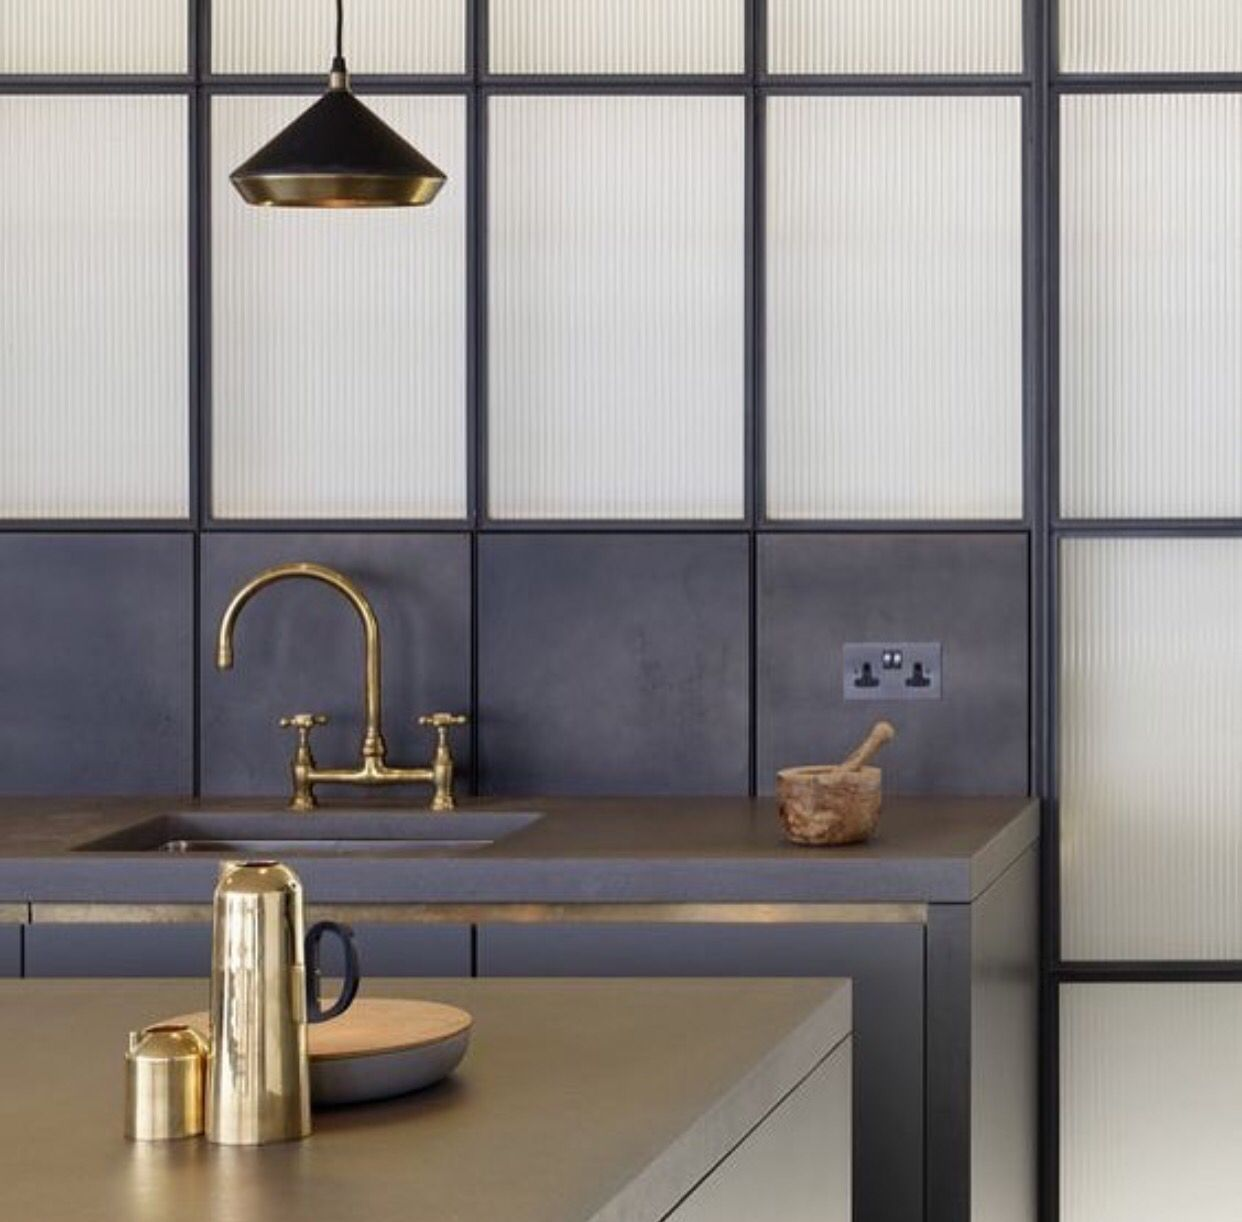 michealis boyd london | concept | pinterest | kitchens, interiors